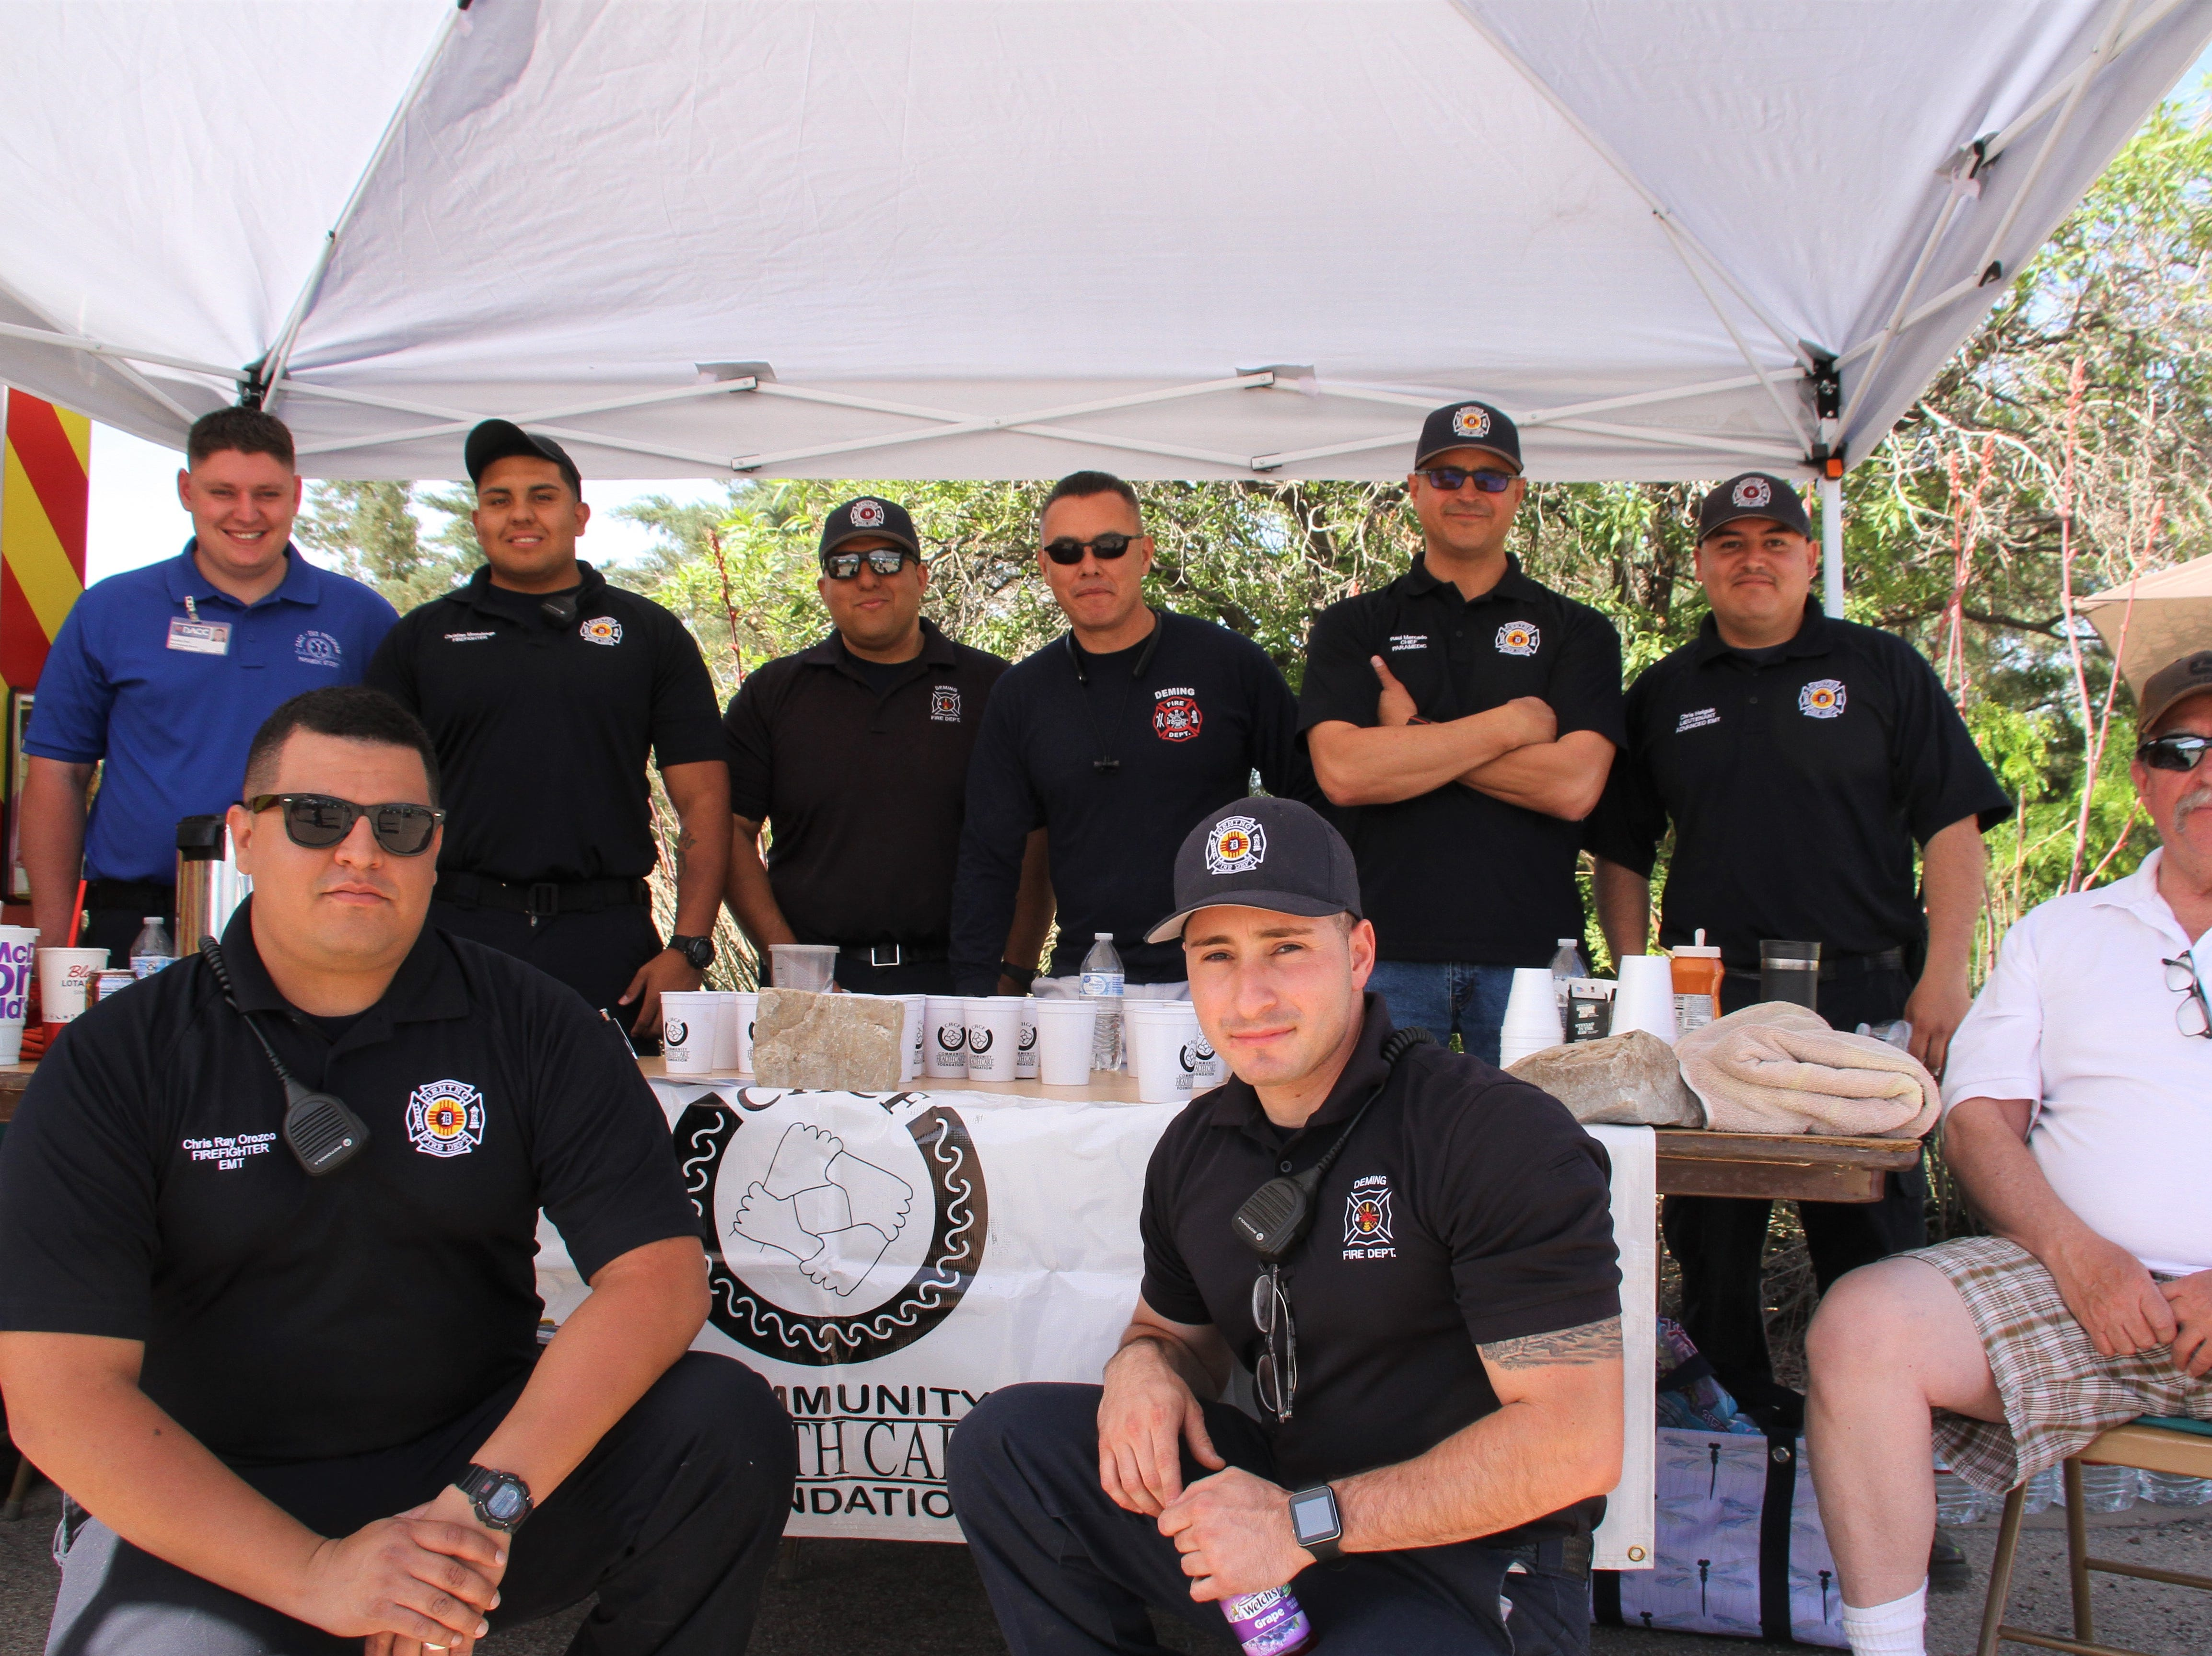 Deming Fire Department along with Community Health Care Foundation tabling together at the Celebration of Life walk.